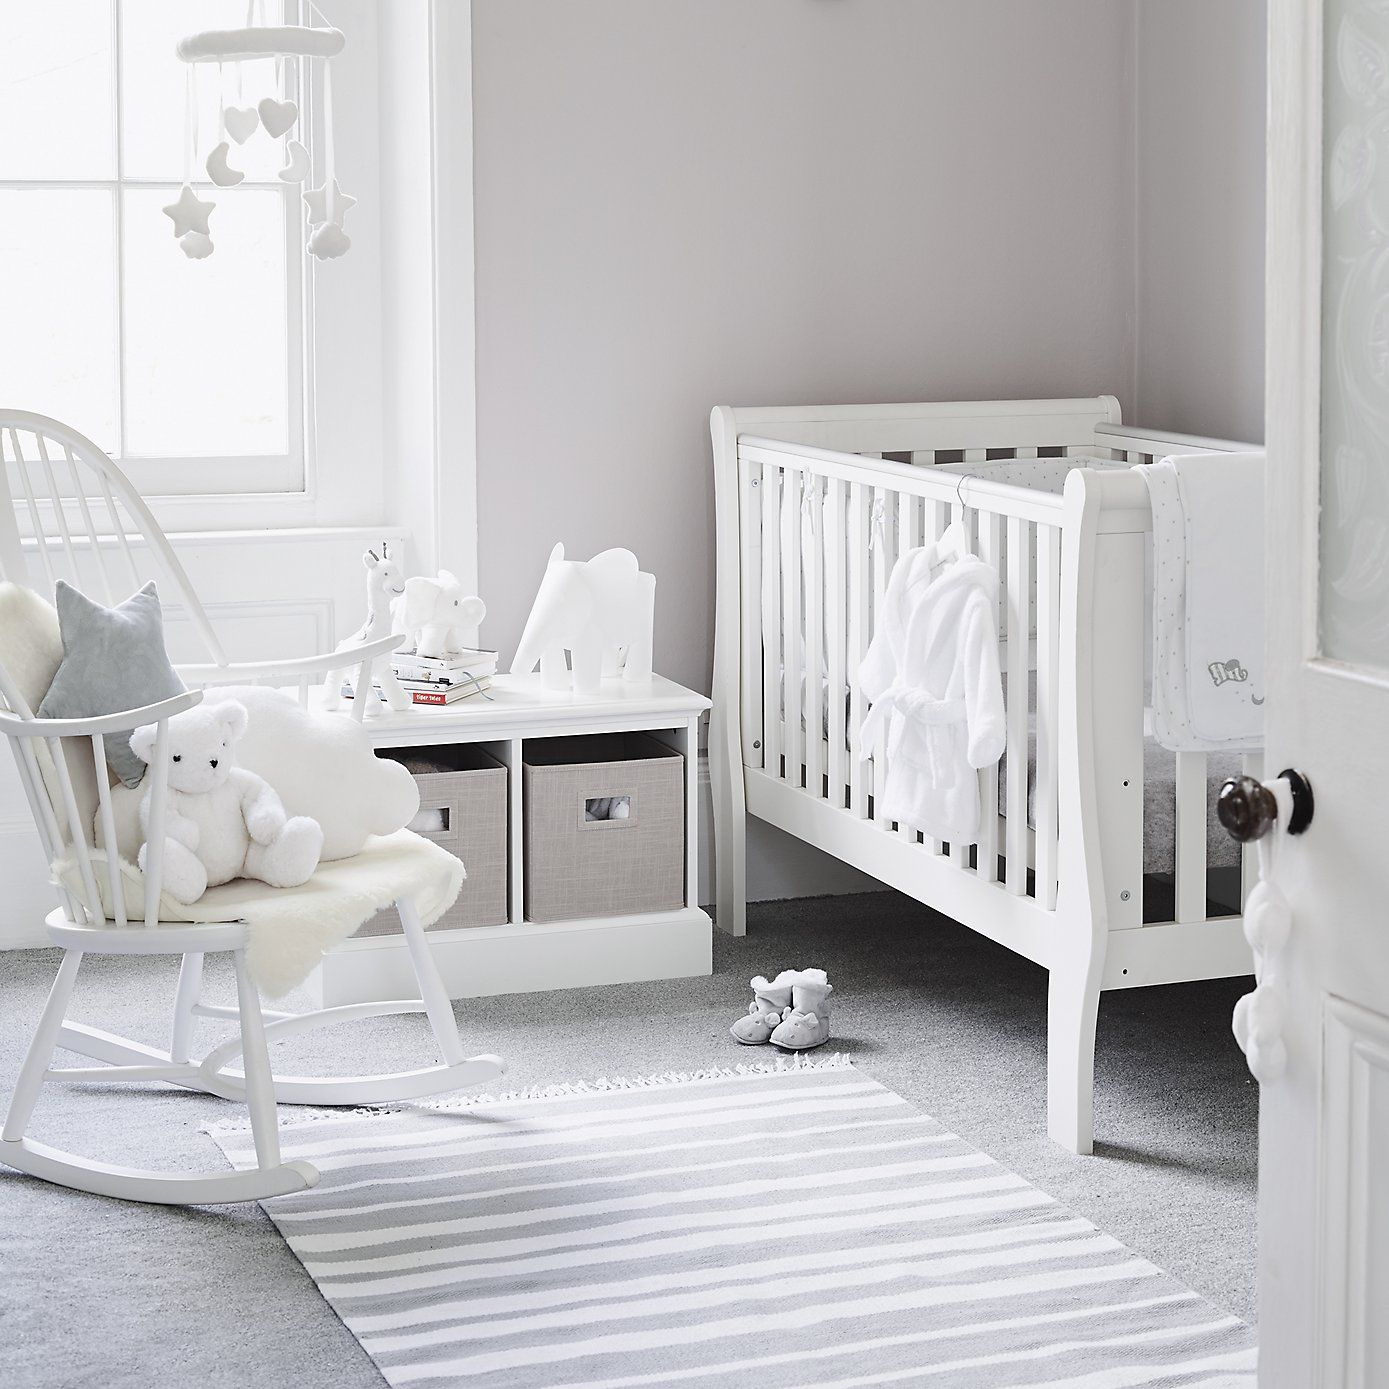 20 Beatifull Decor Ideas For Your Baby S Room: Baby, Toddler, Nursery, Home Decor, Interior, Interior